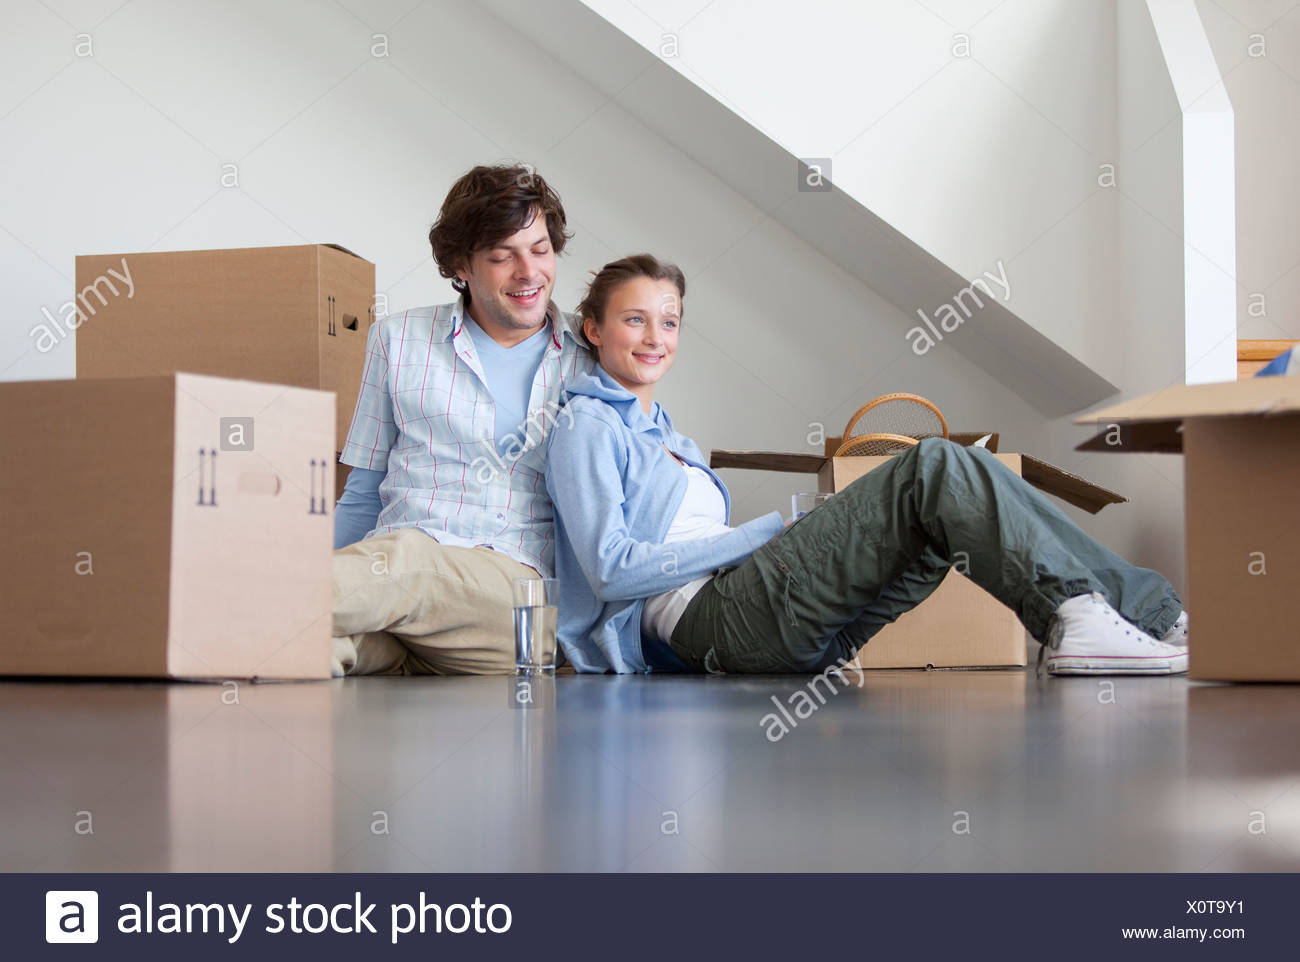 Couple sitting with cardboard boxes - Stock Image